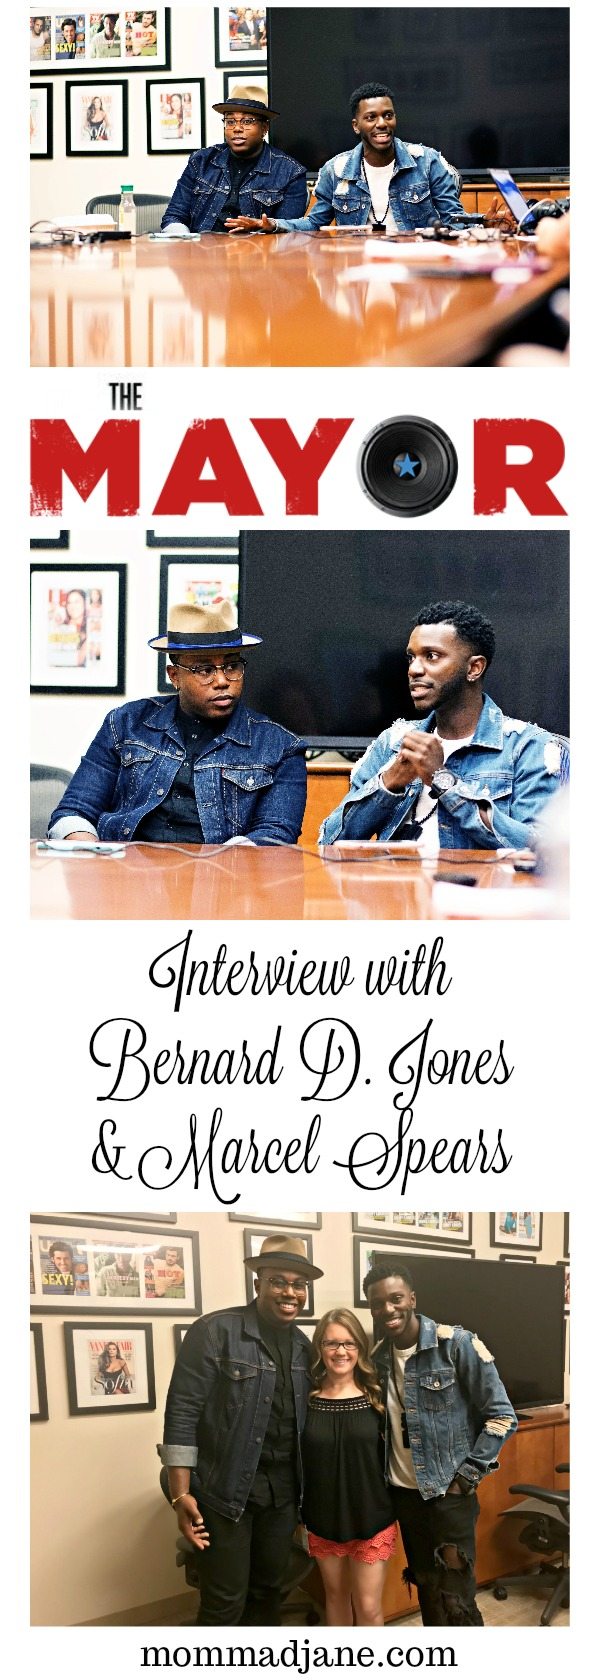 exclusive interview with Bernard D. Jones and Marcel Spears